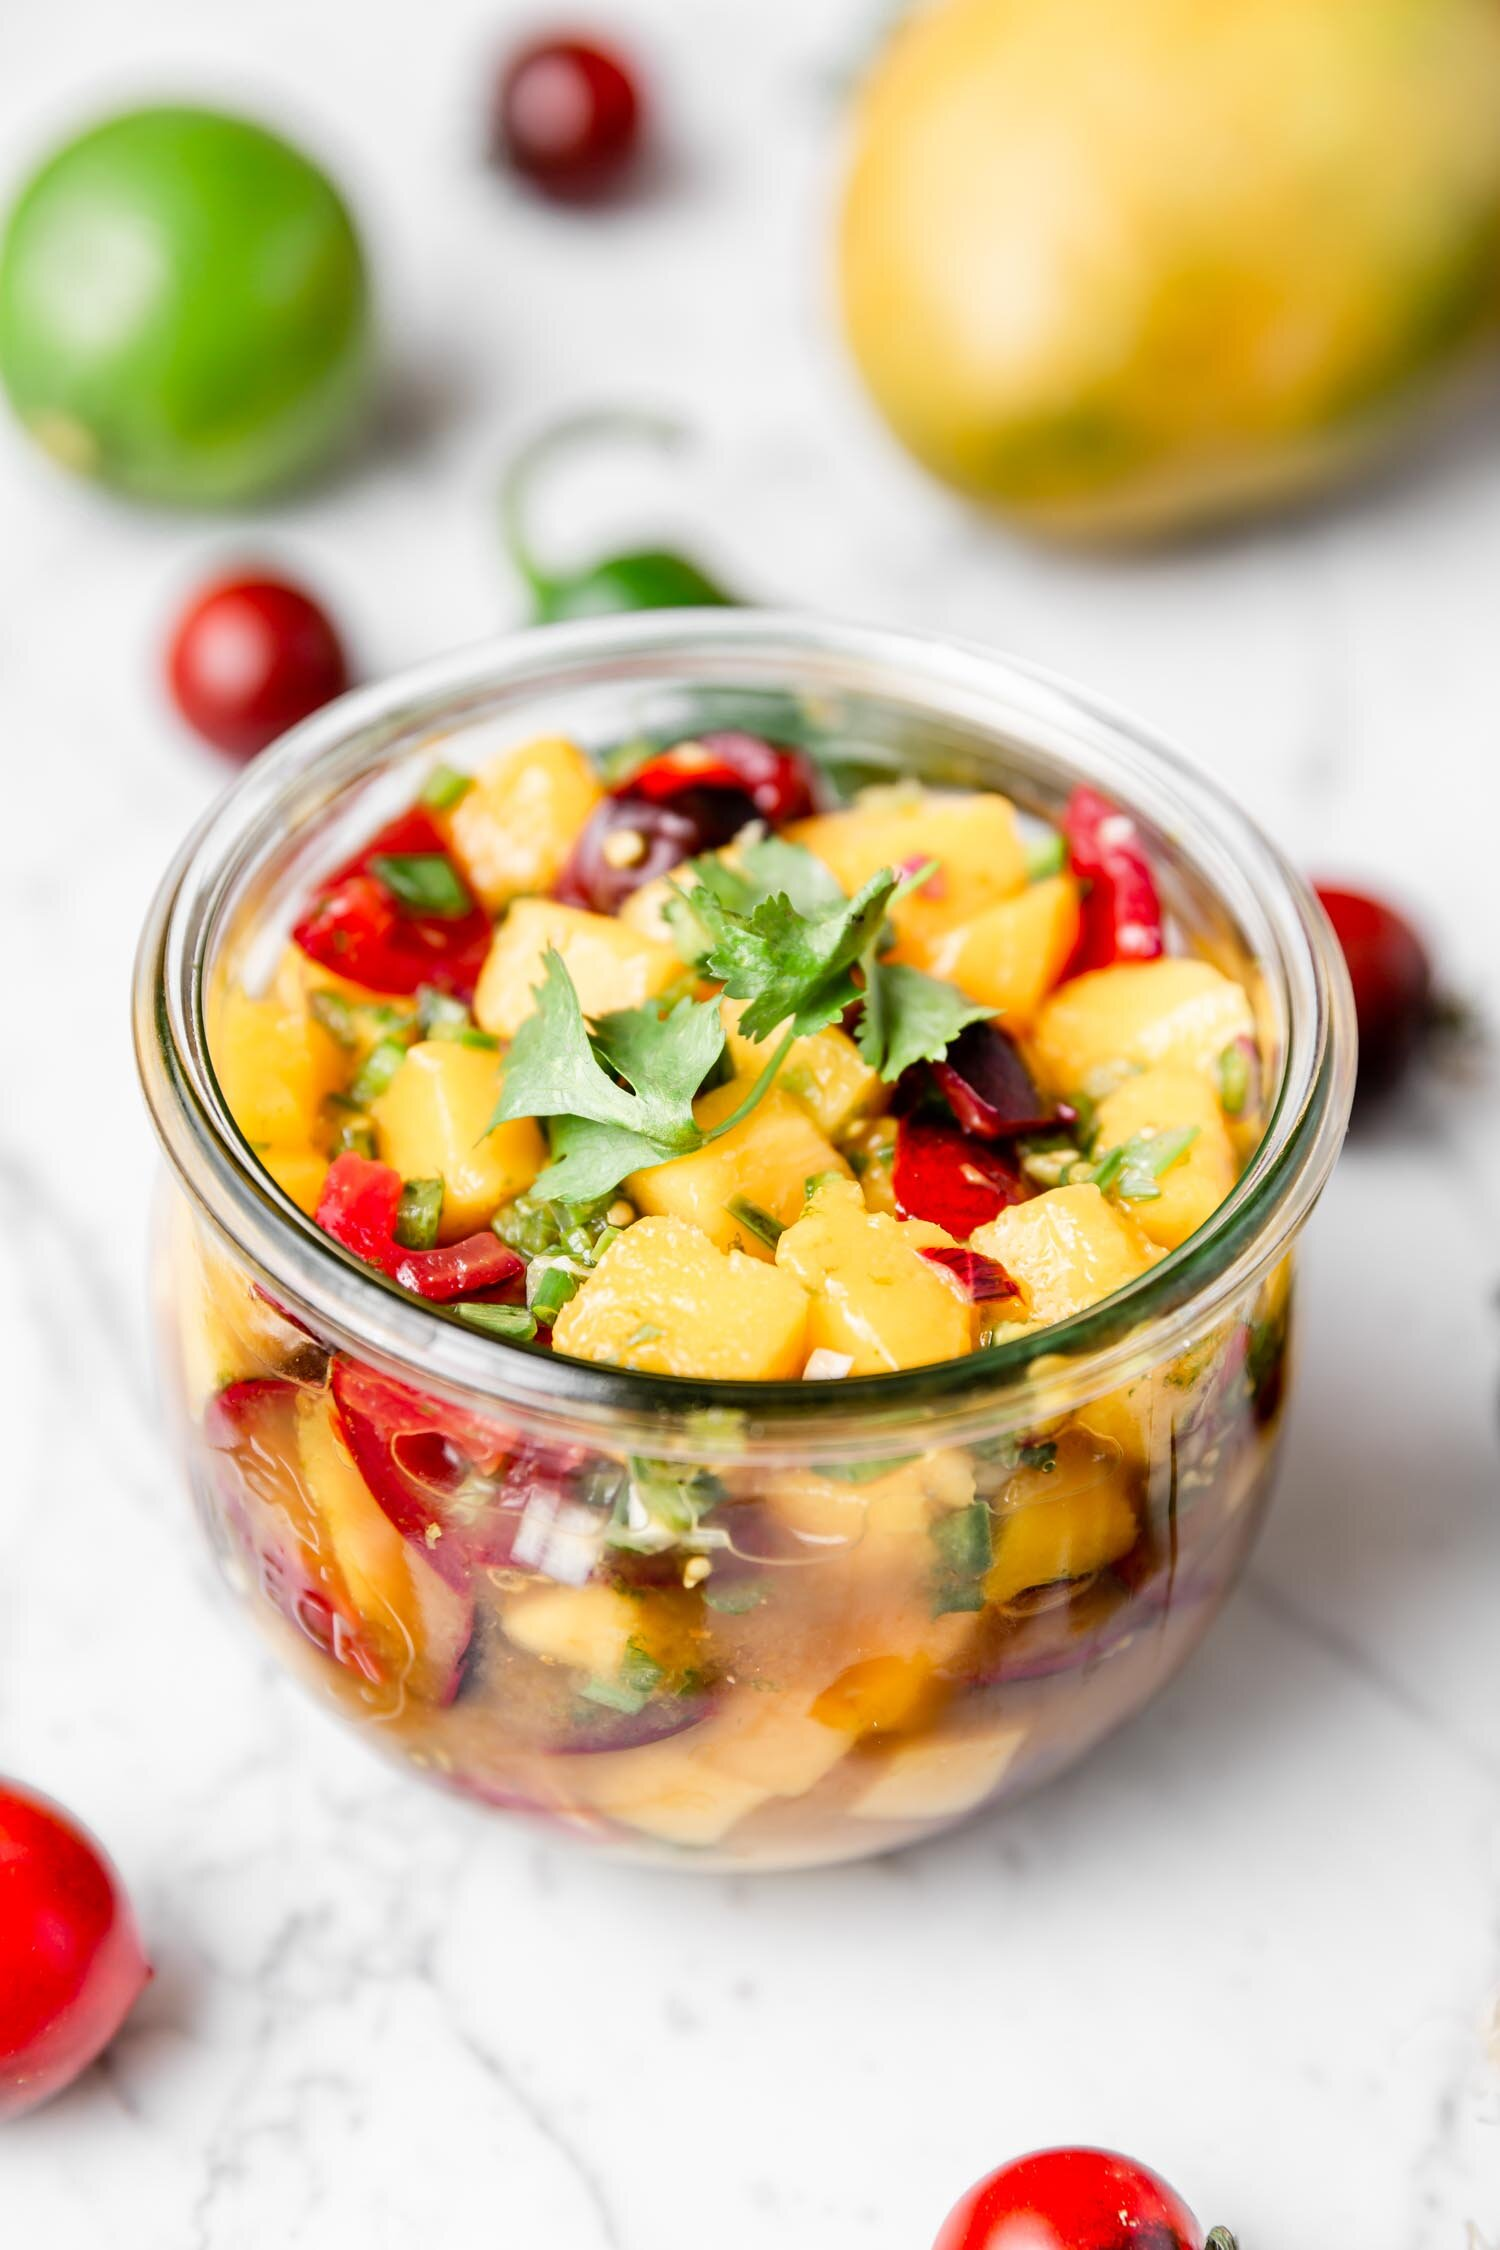 5-ingredient Mango Salsa that is fresh, vibrant, and full of flavor - plus, it's ready in just a few minutes! Sure to disappear quickly, so make a big batch! Recipe by Kari of Beautiful Ingredient.  #mangosalsa #mangorecipe #mangosalsarecipe #vegan #plantbased #salsarecipe #oilfree #glutenfree #suga-free #easyrecipe #quickandeasyrecipes #quickeasymeals #veganmexicanfood